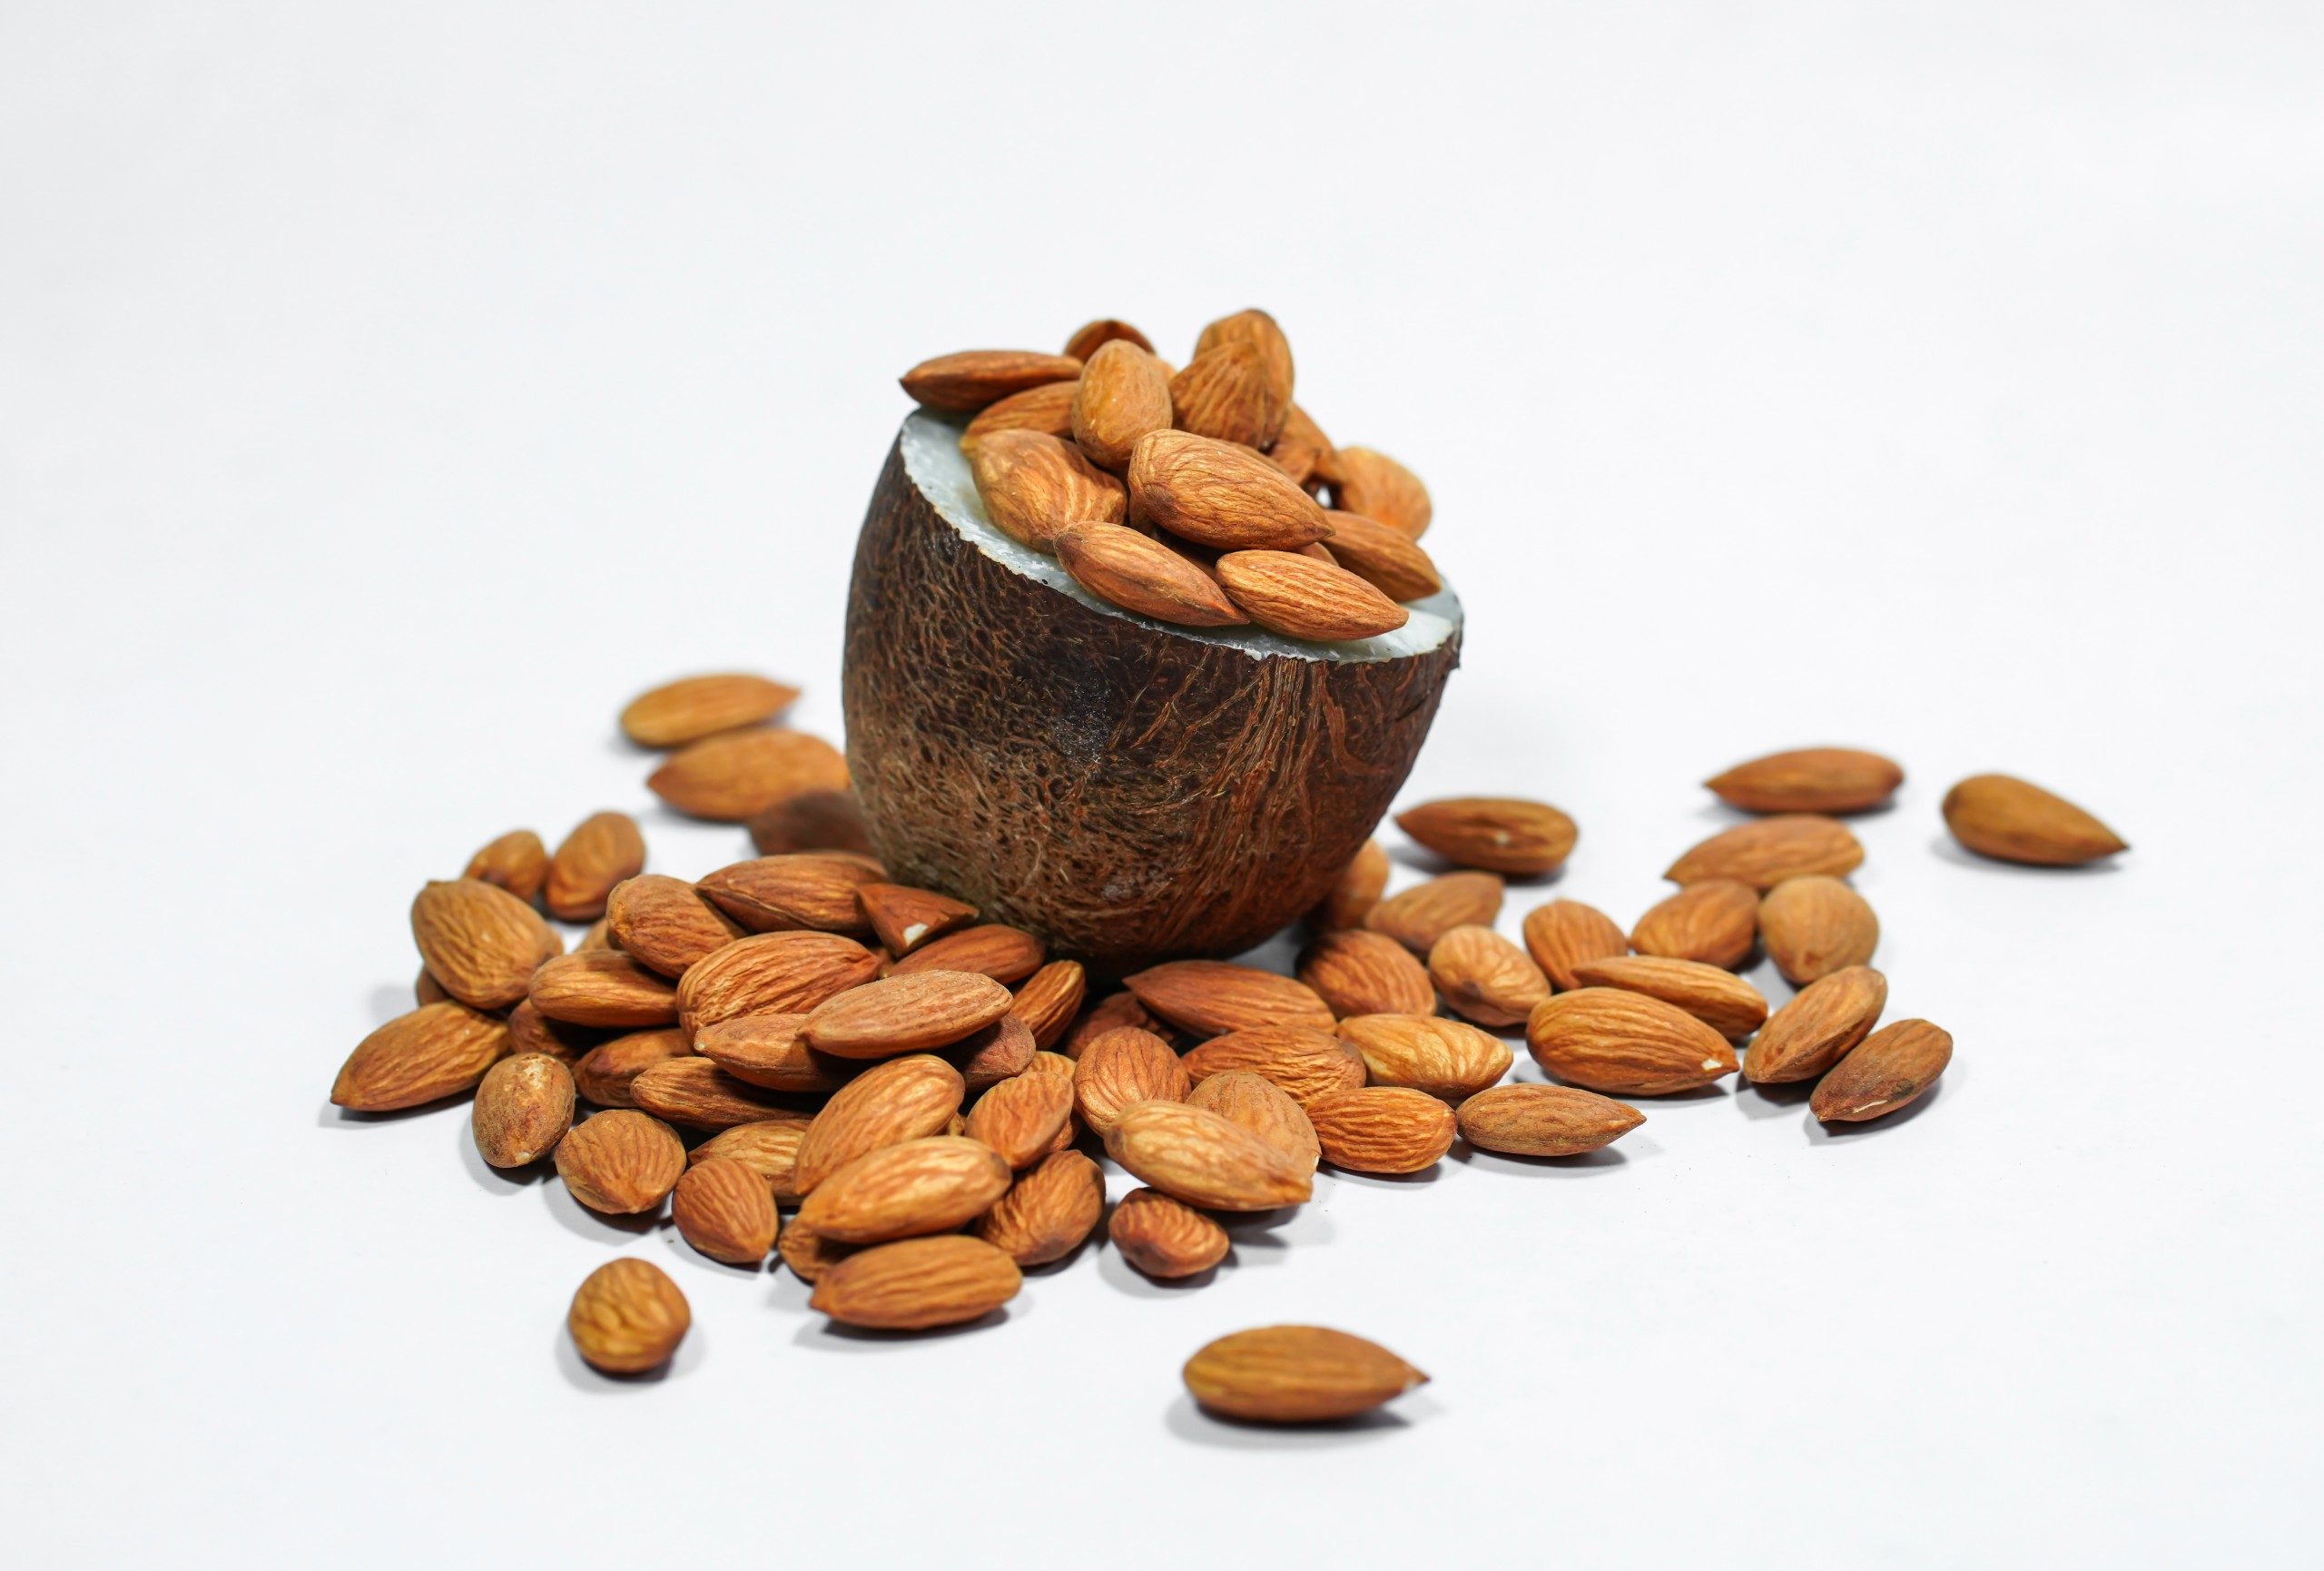 Coconut and Almonds